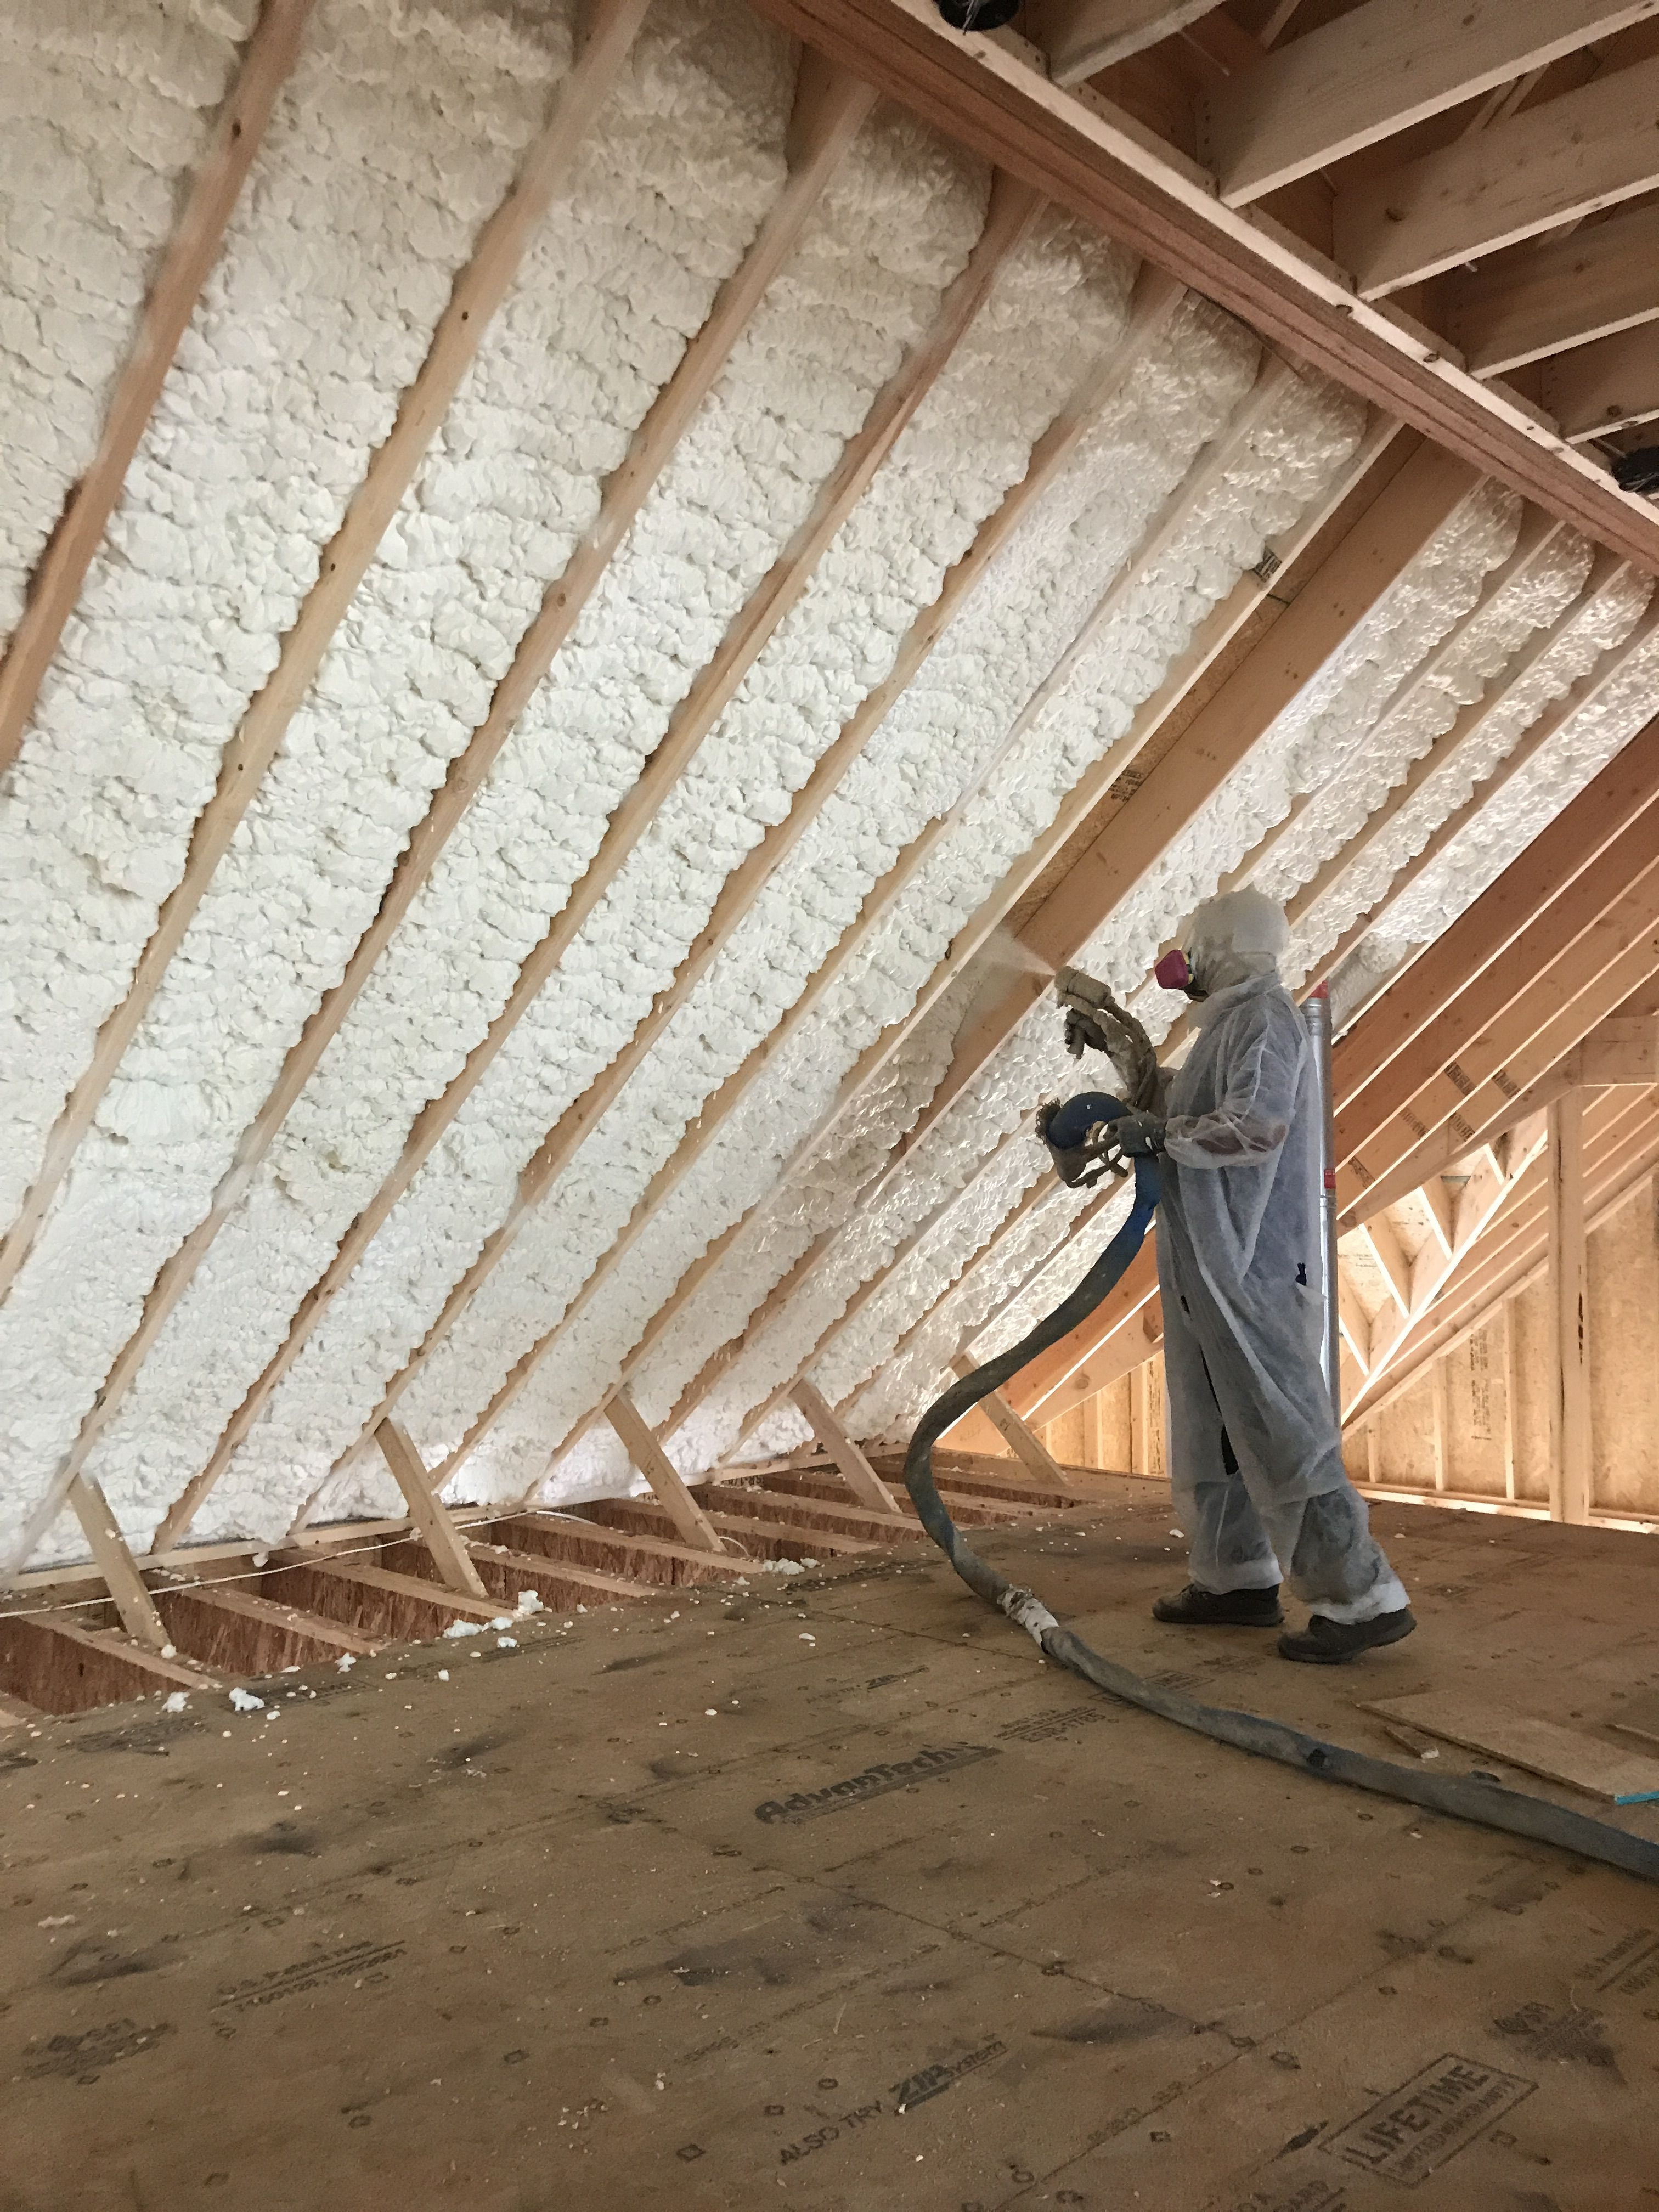 Spraying Open Cell Spray Foam Insulation On The Roof Deck And Walls Of A New Construction Home This Builder Is Ma Spray Foam Insulation Spray Foam Insulation